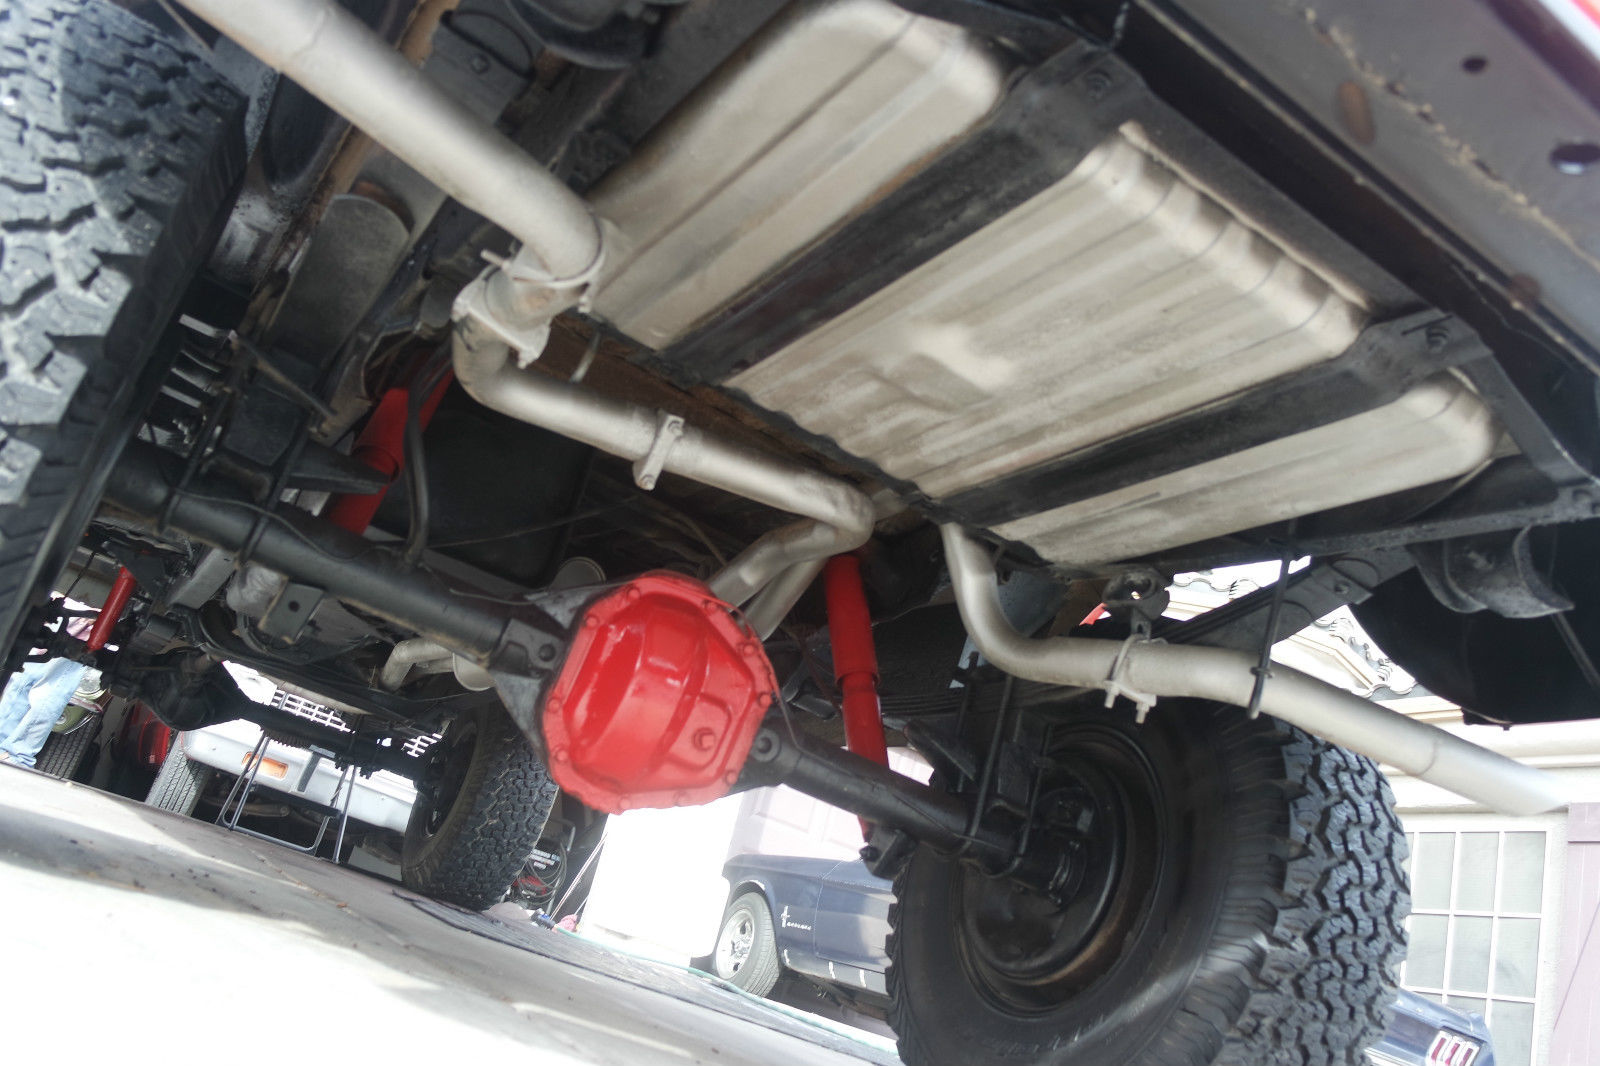 Spray In Bedliner Cost F150 >> FORD F250 4X4 Pick Up Truck, TAGS > high Boy, f150, f350,4 WHEEL DRIVE, Lifted for sale in Las ...